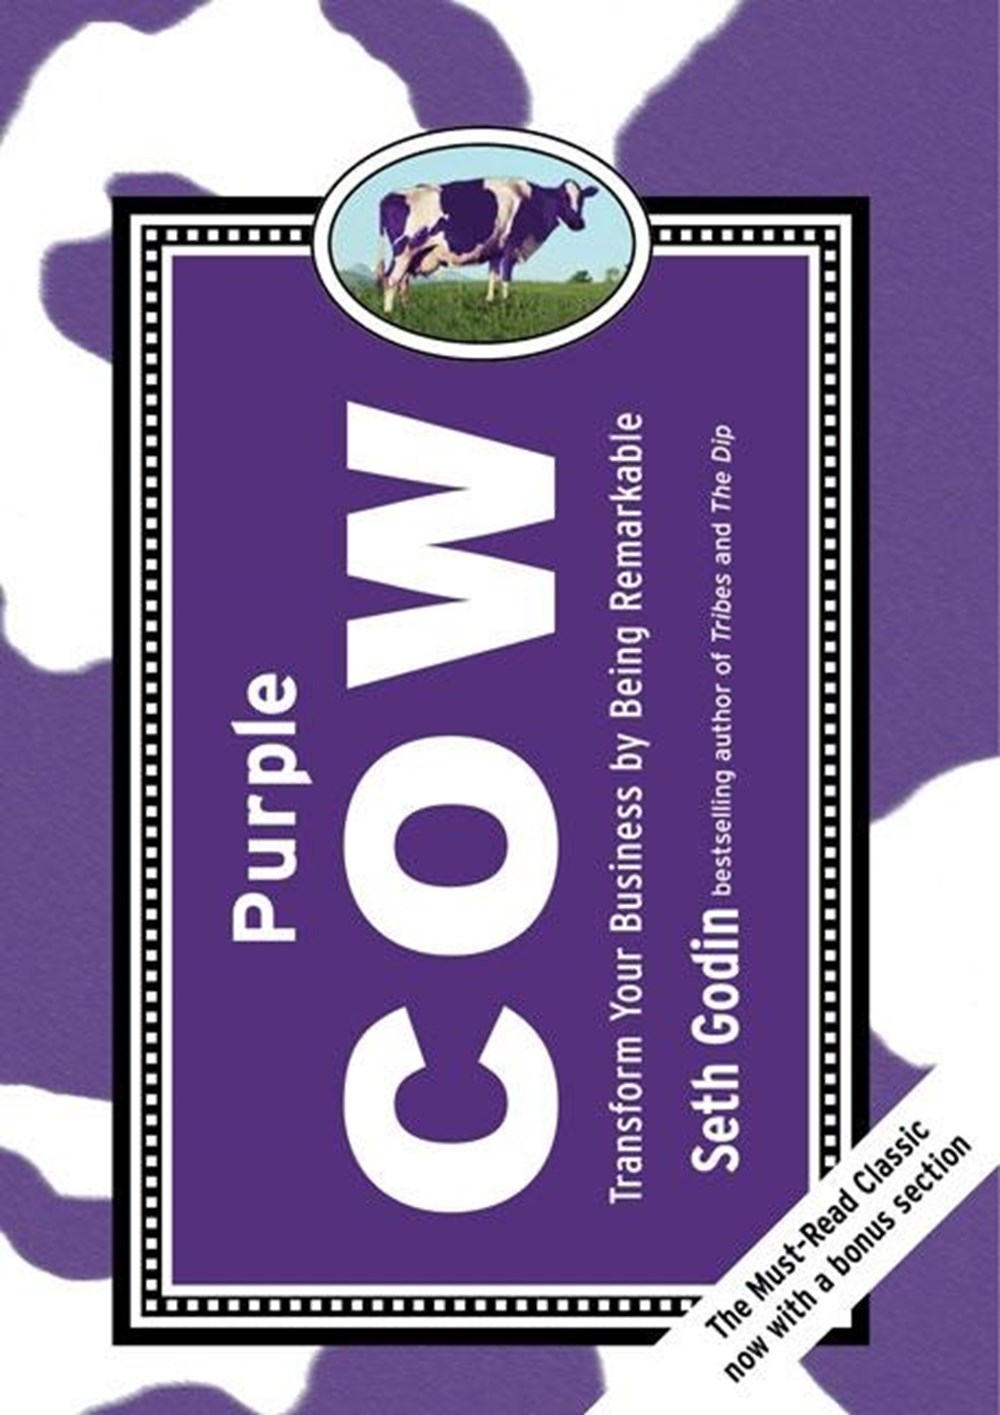 Purple Cow, New Edition Transform Your Business by Being Remarkable